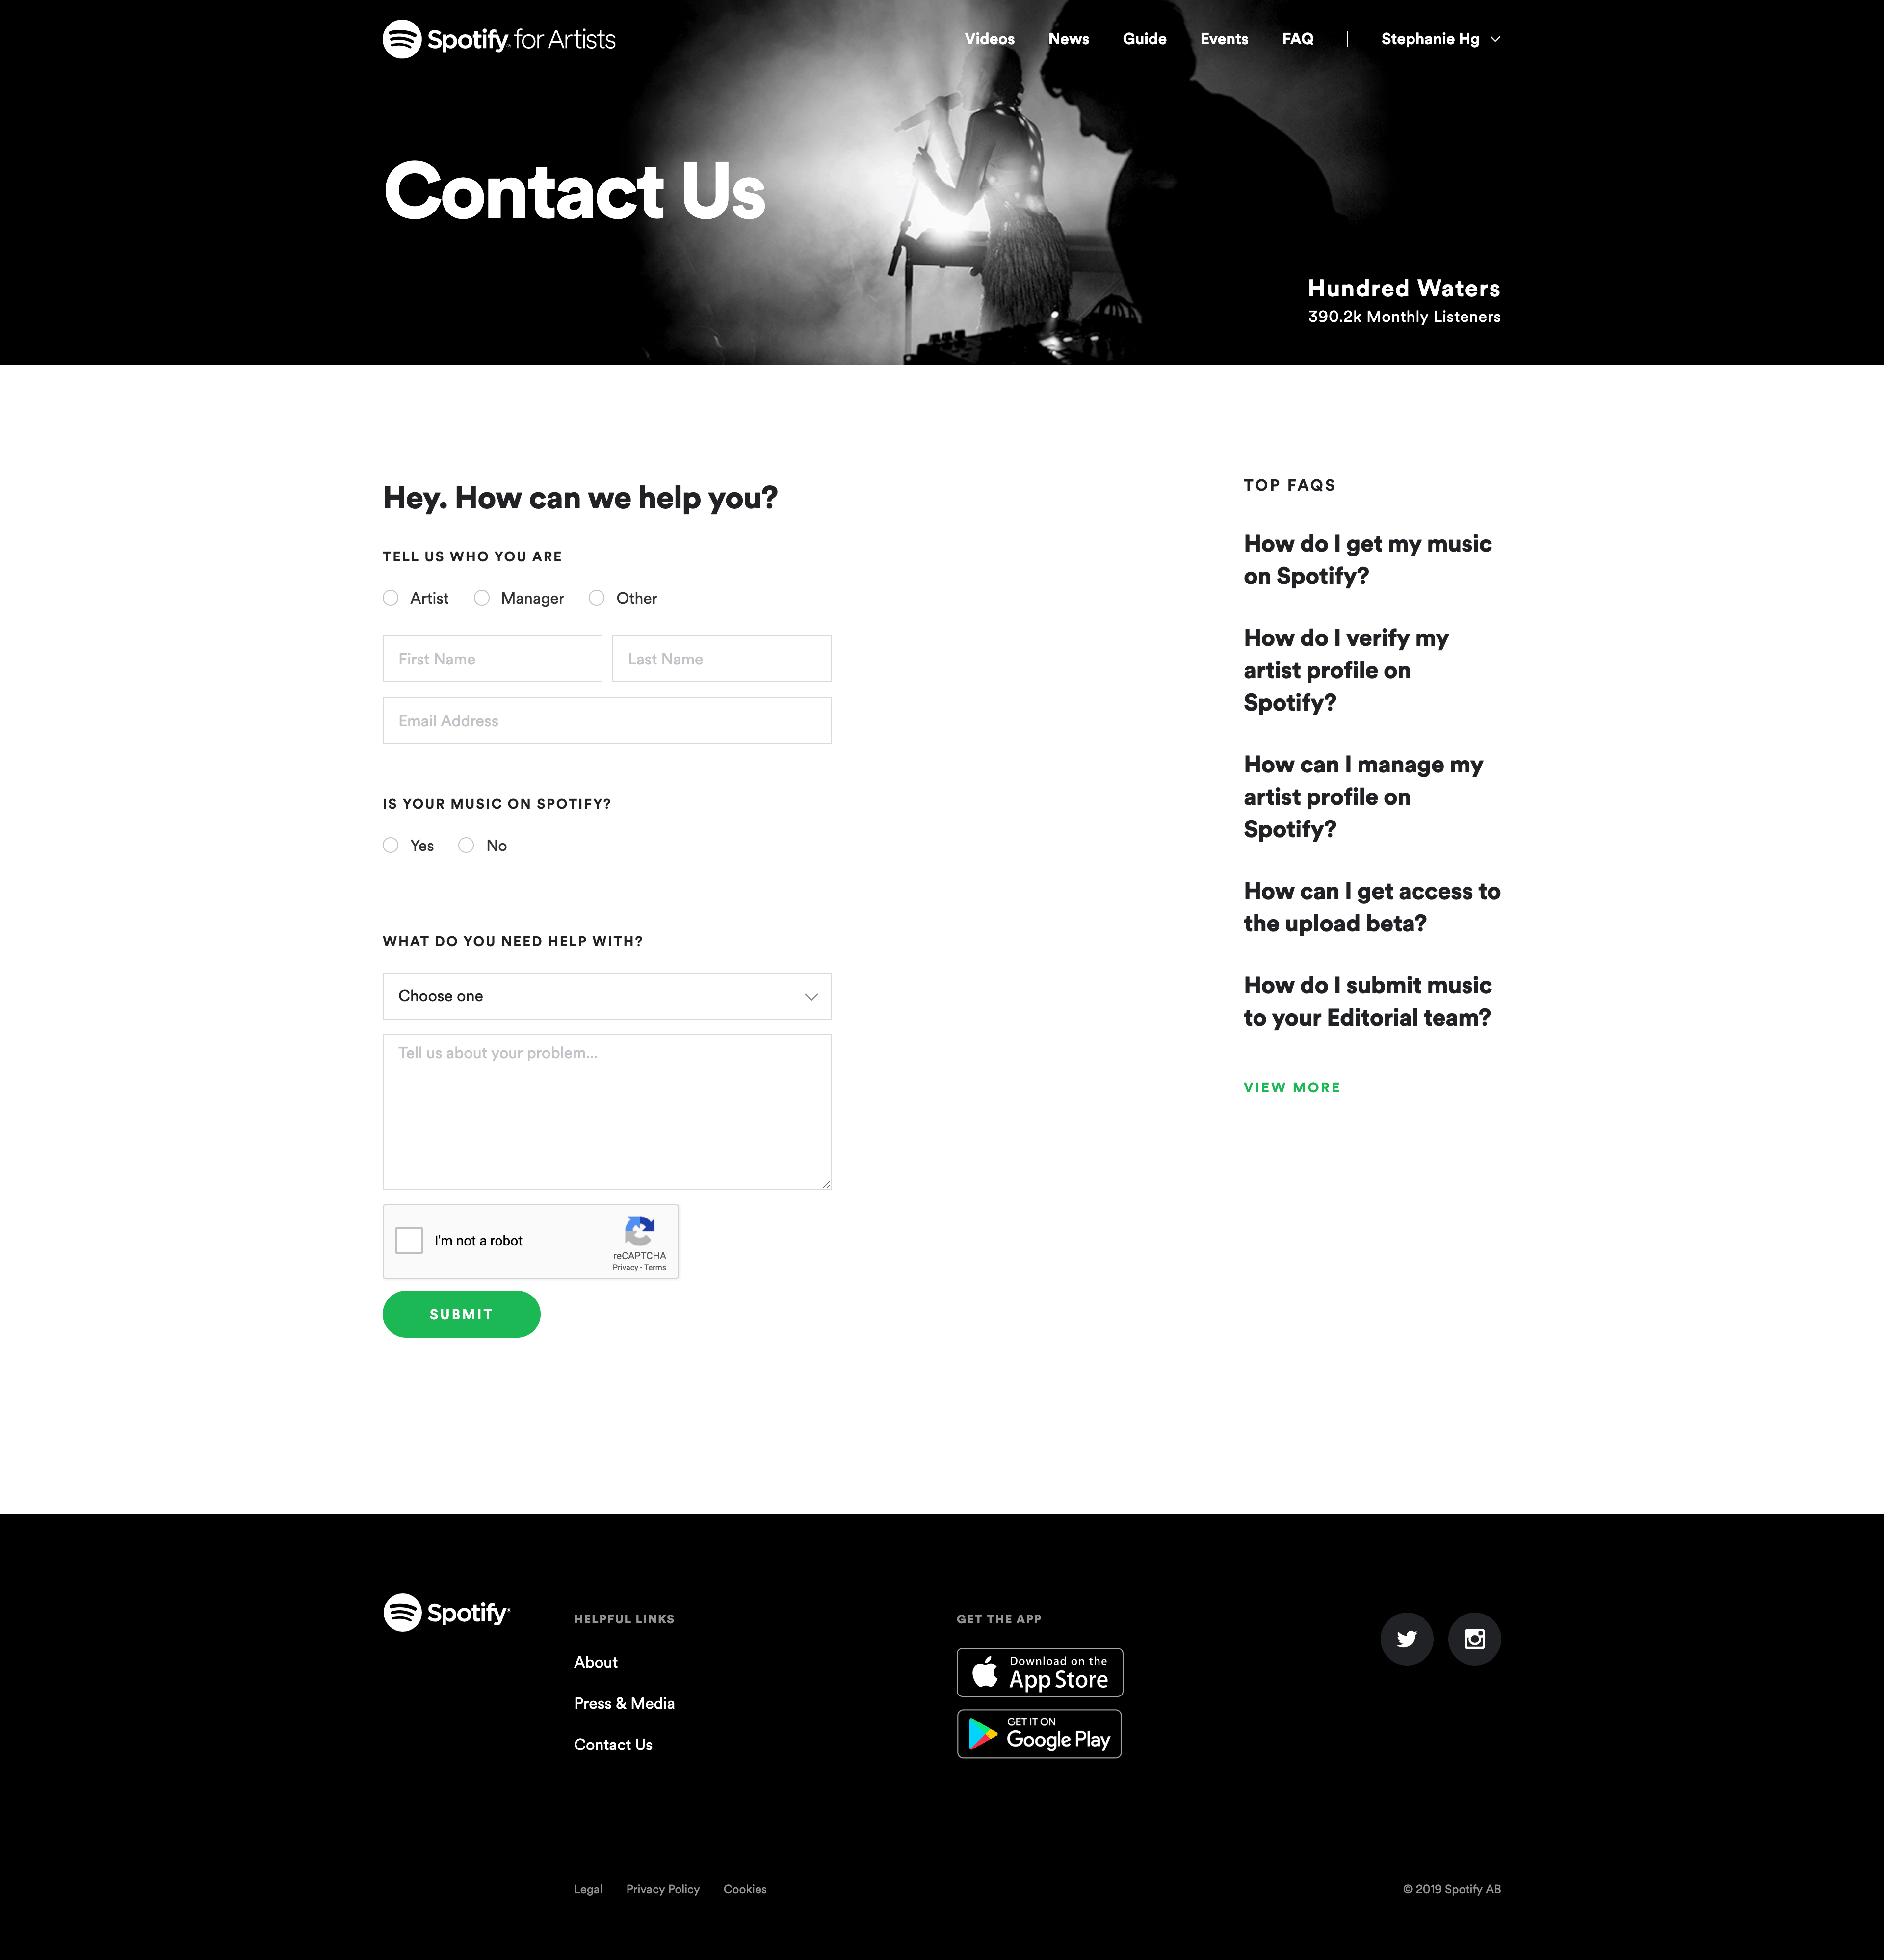 Contact Us by Spotify for Artists